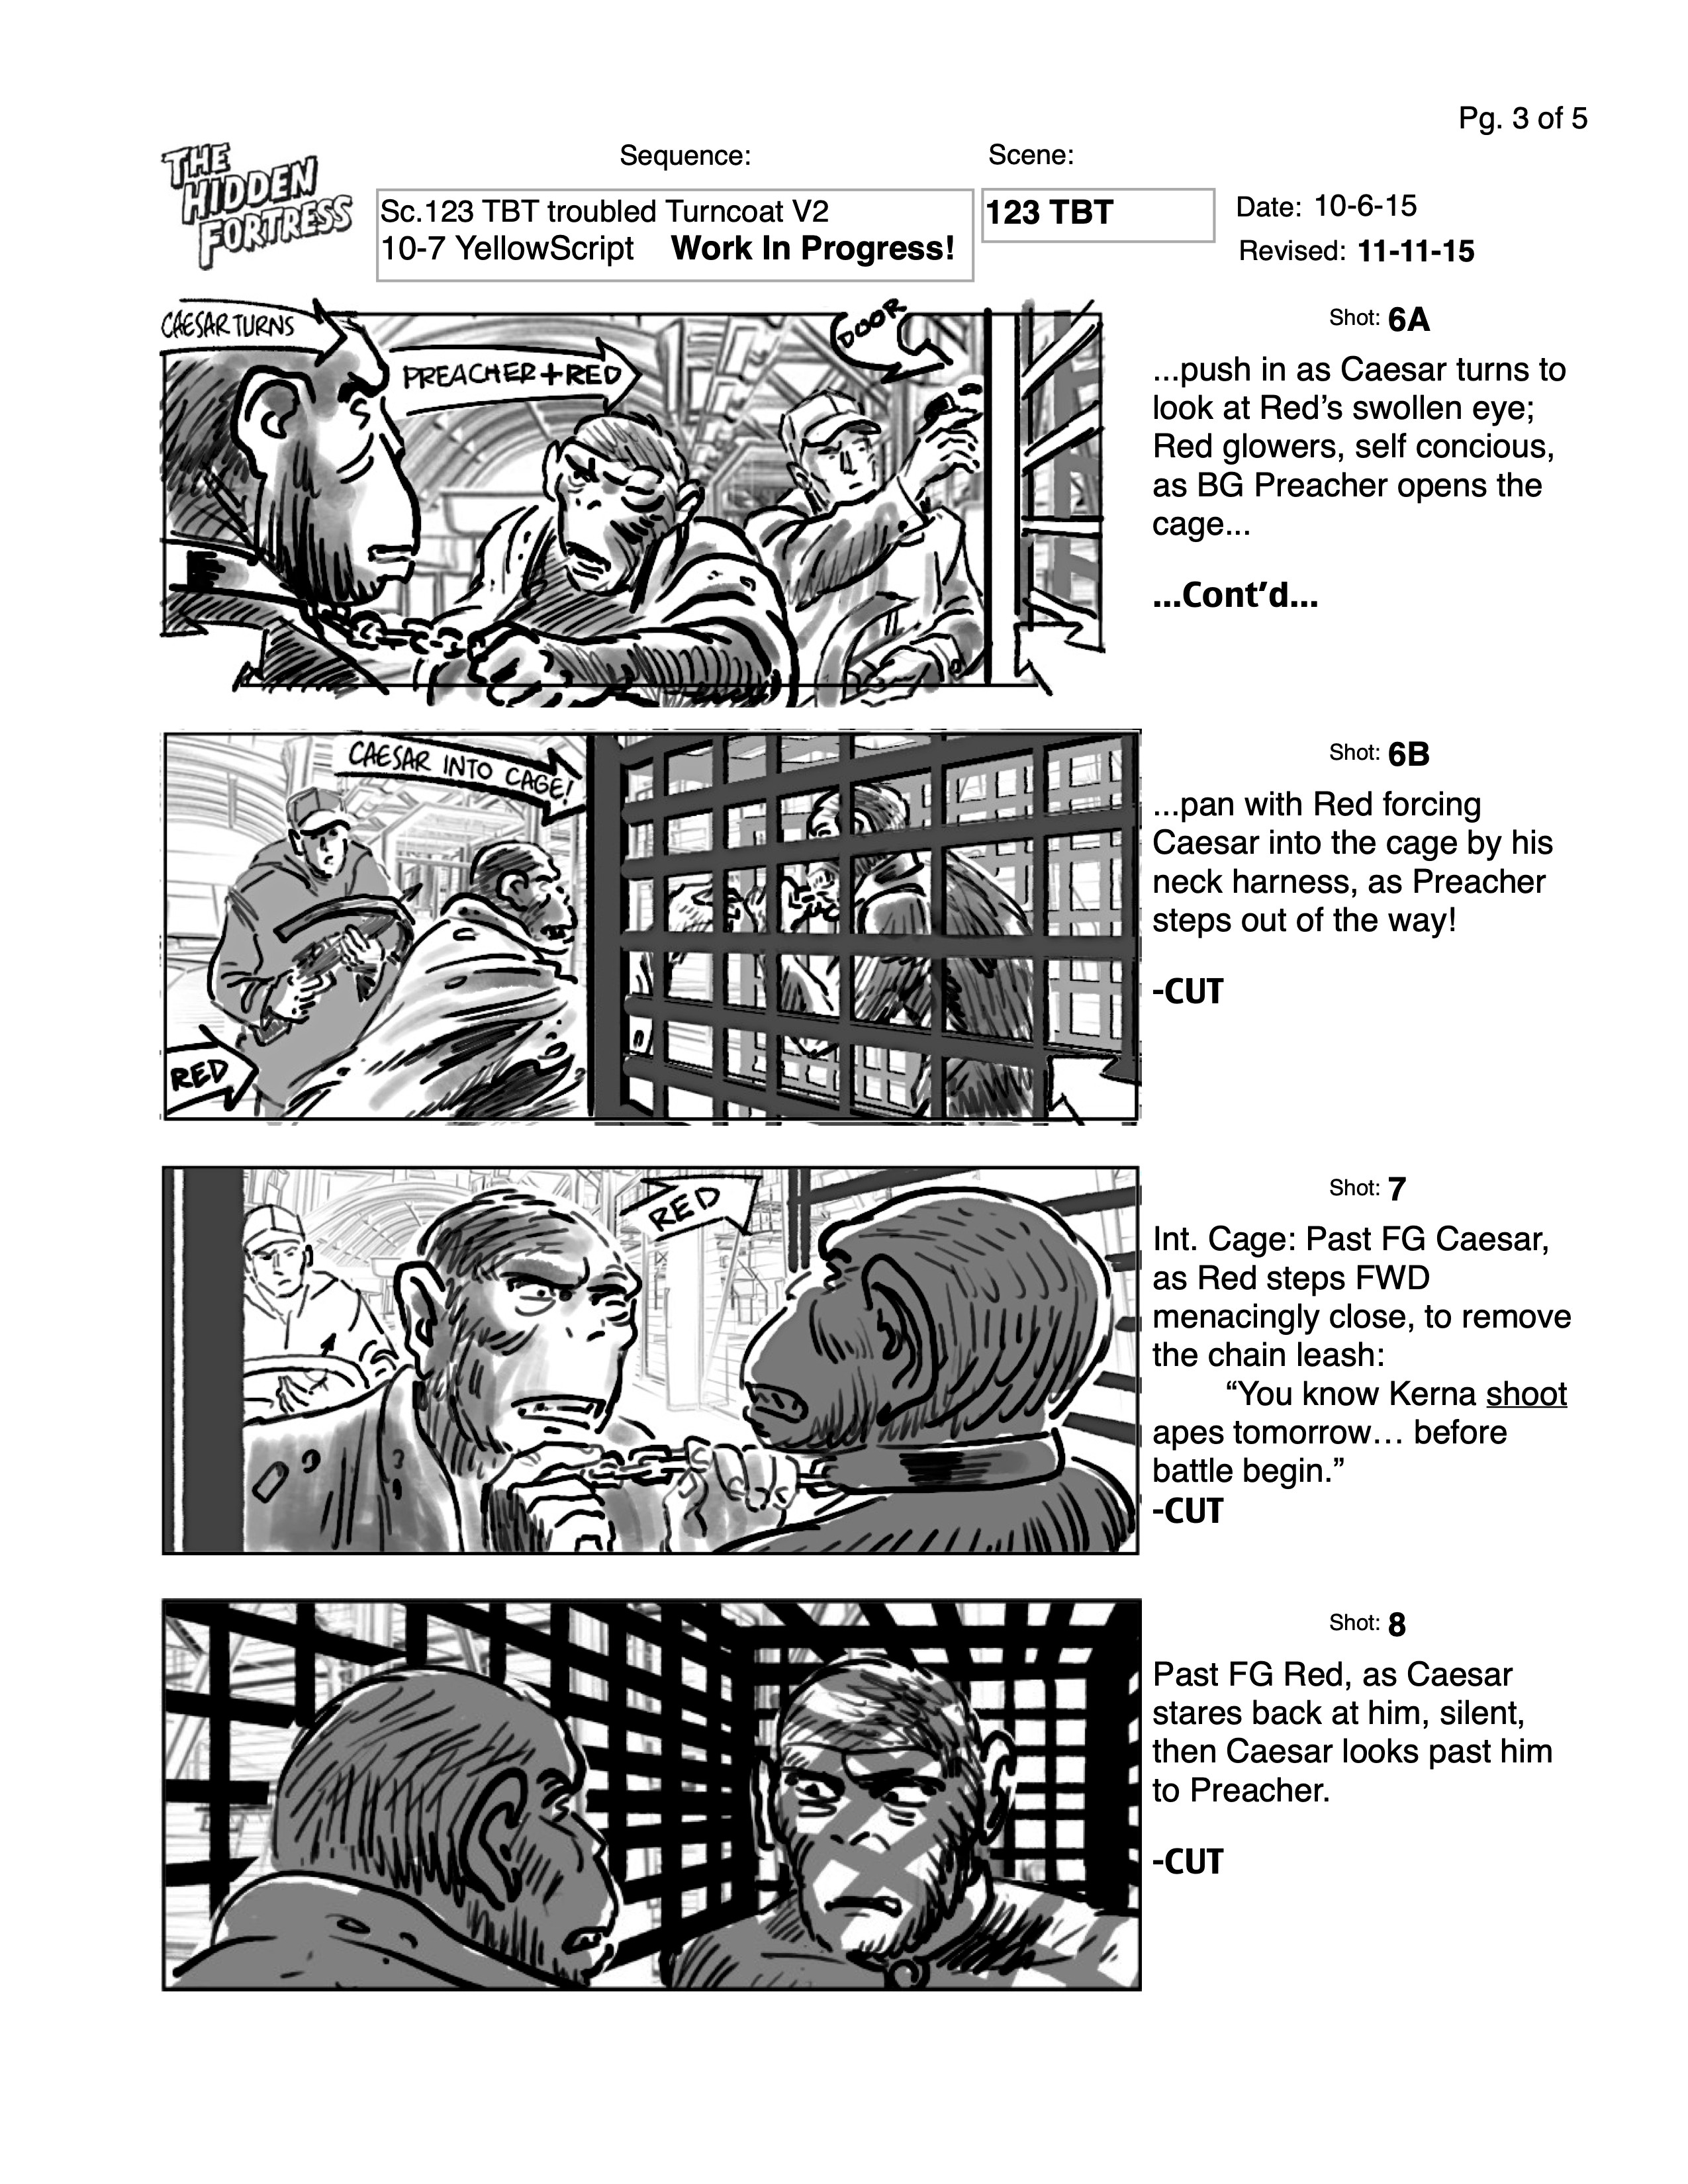 The backgrounds here were crucial to understanding much of the later character movements and story, so I included them throughout.